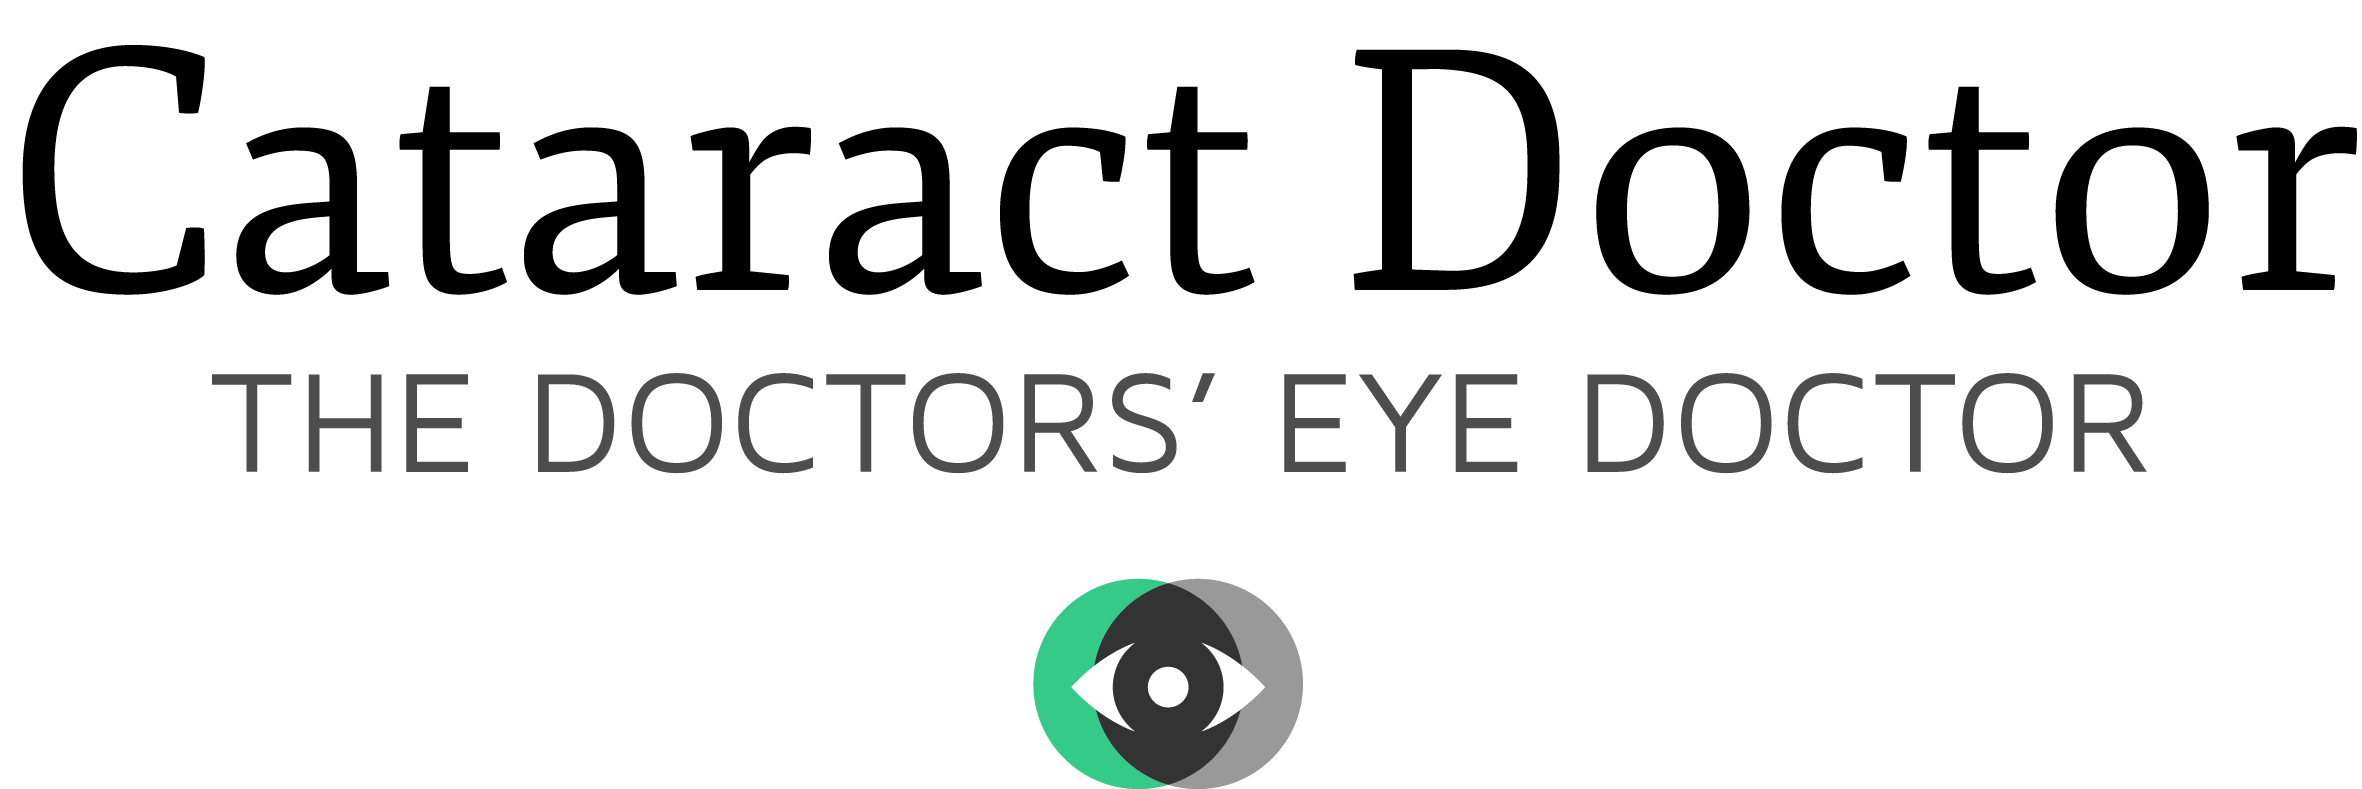 Cataract Doctor